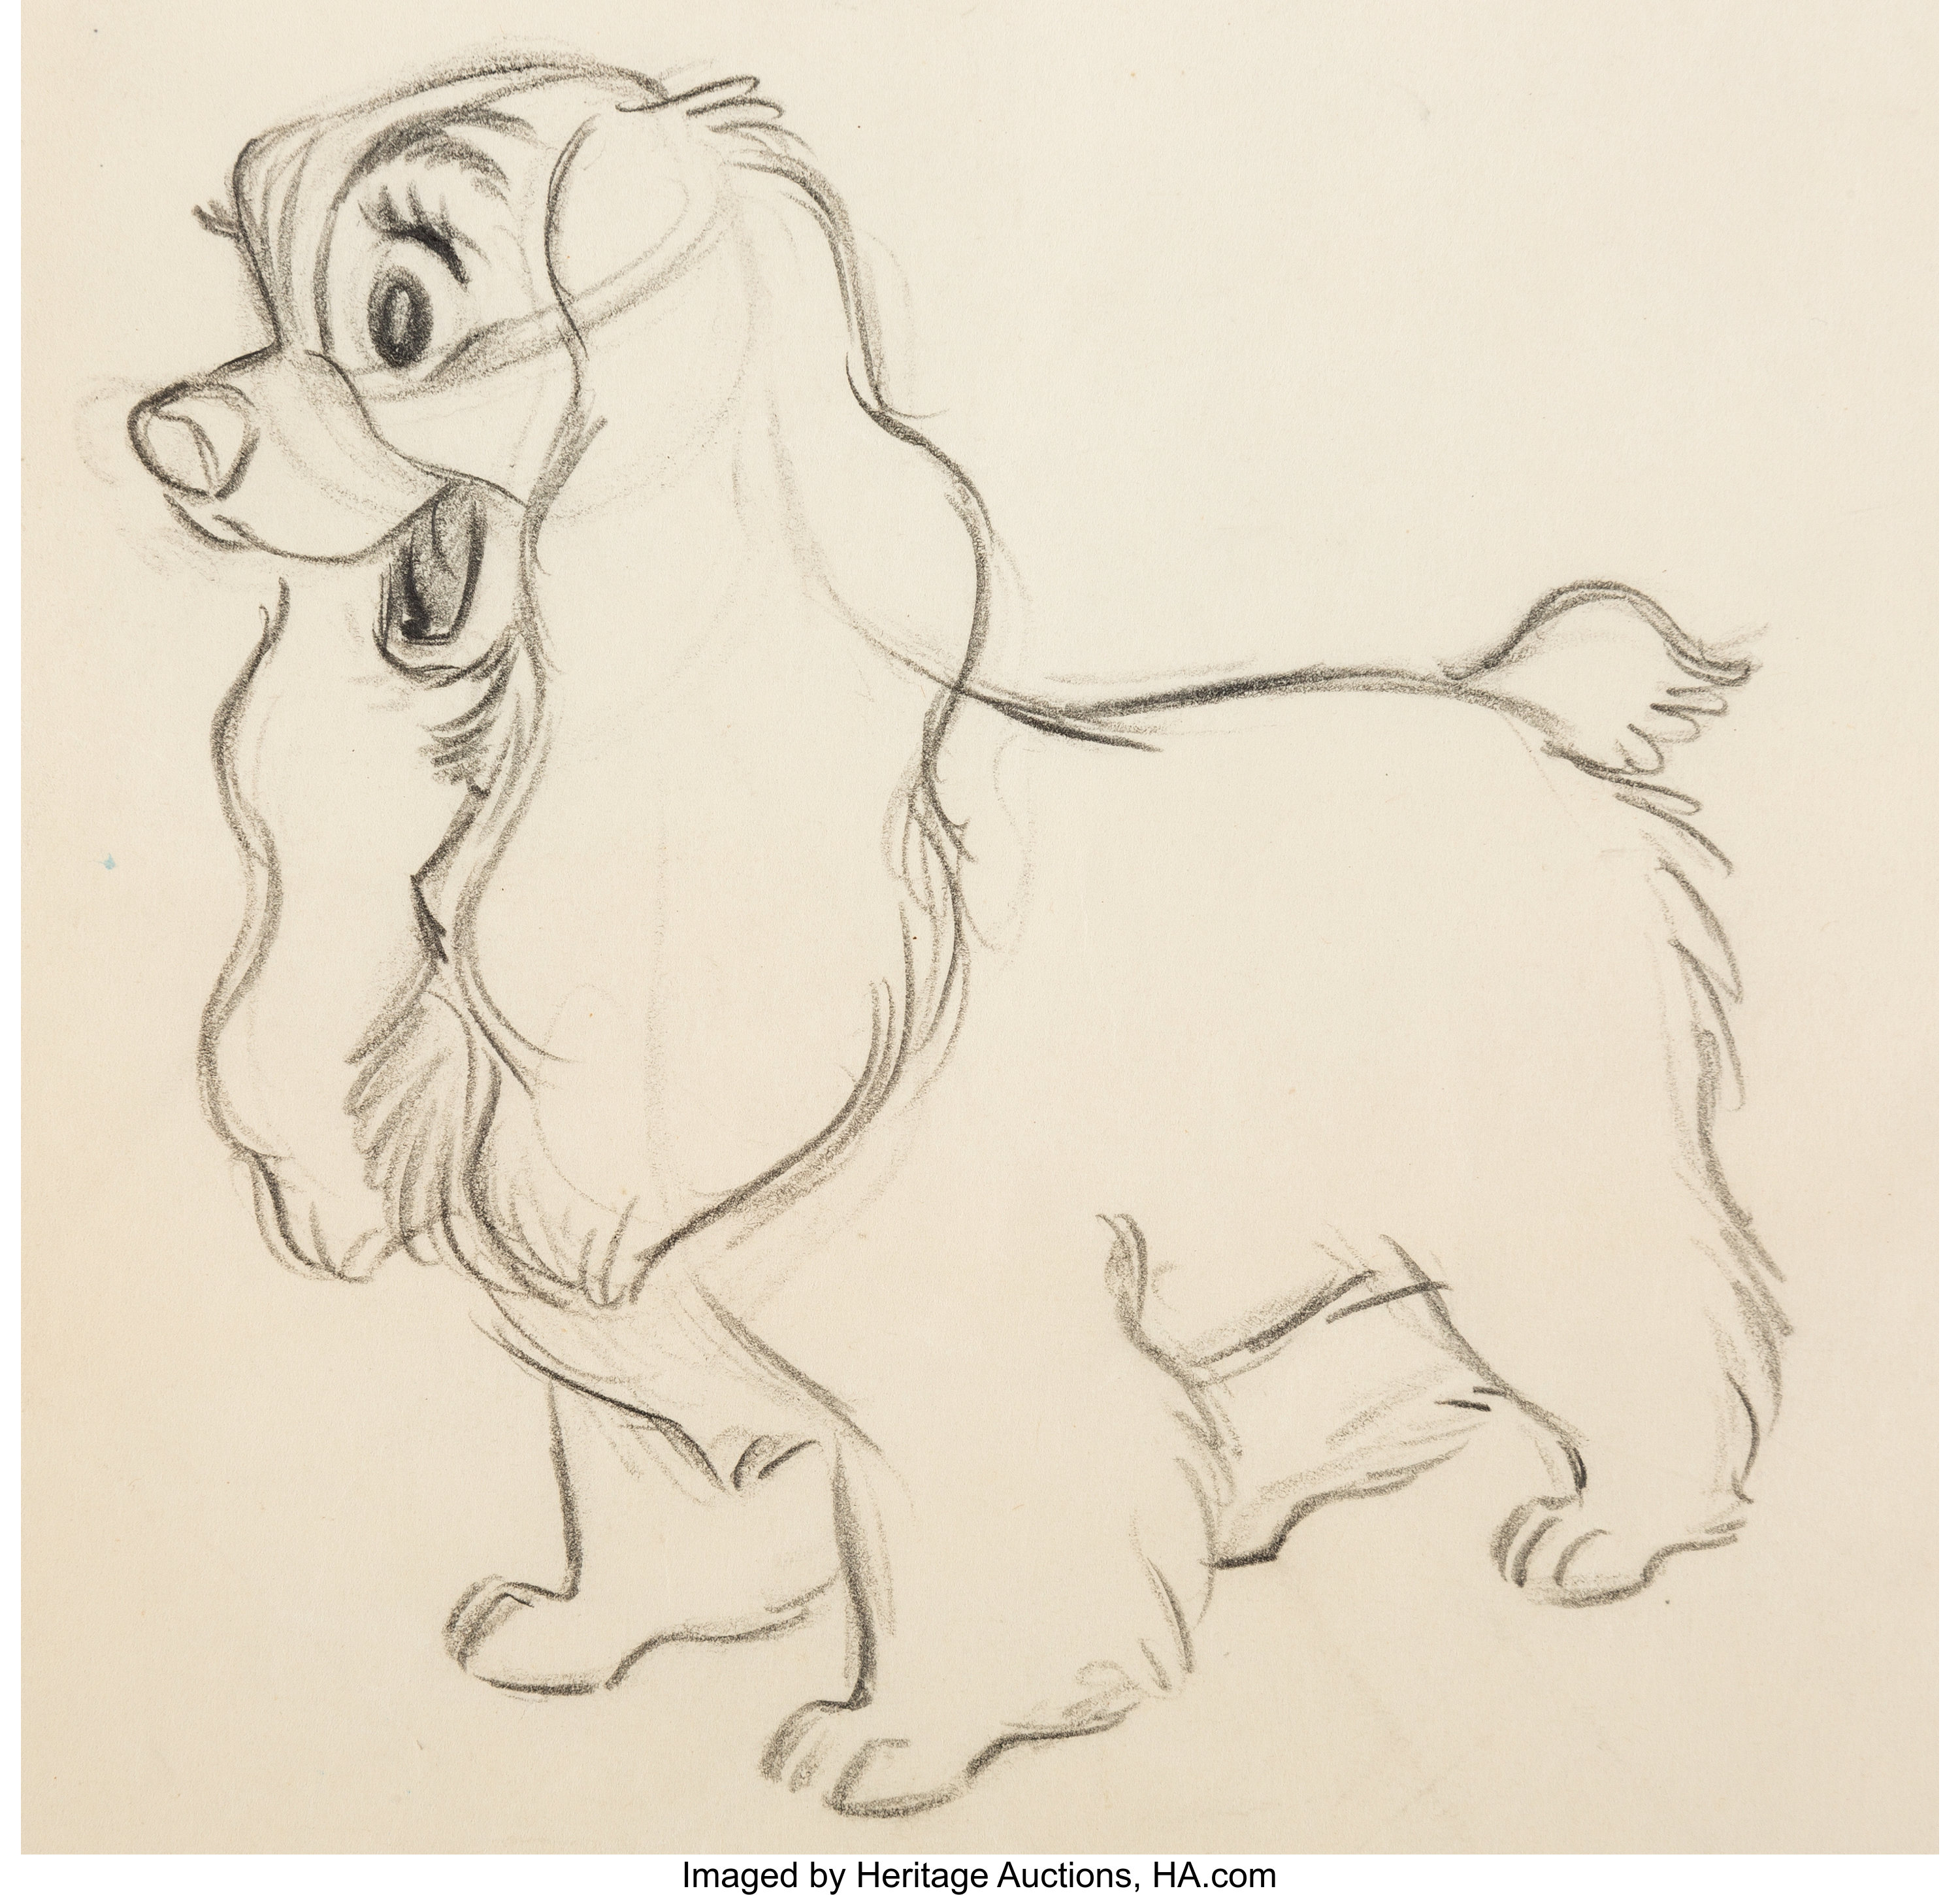 Lady And The Tramp Animation Drawing By Ollie Johnston Walt Lot 12185 Heritage Auctions